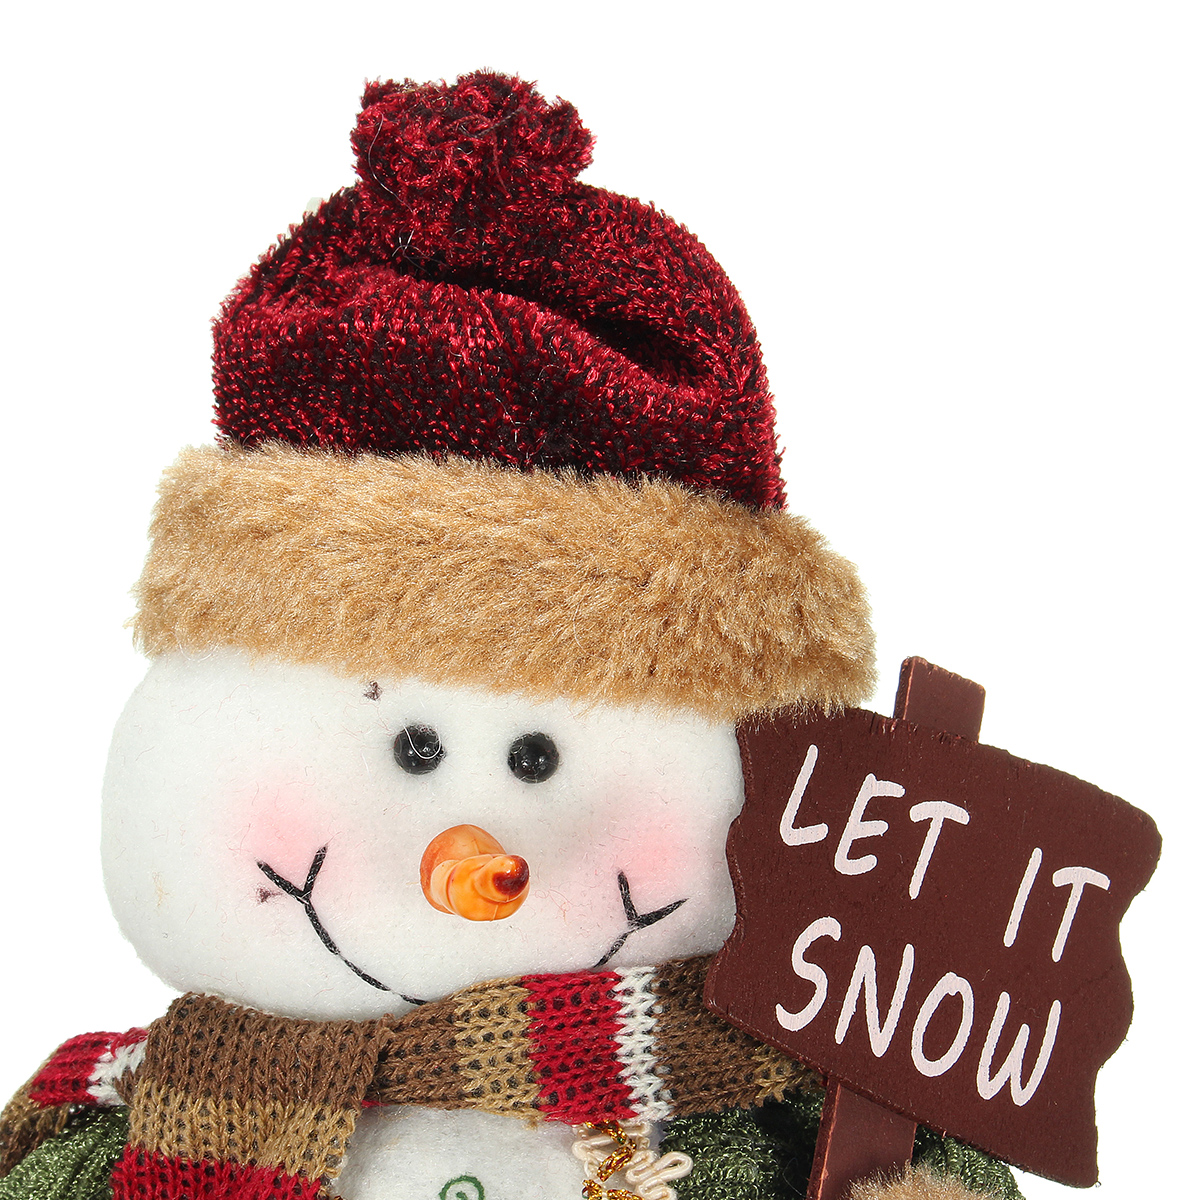 Christmas Home Decoration Sitting Cute Snowman Ornament Flannel Toy Gift - Photo: 4